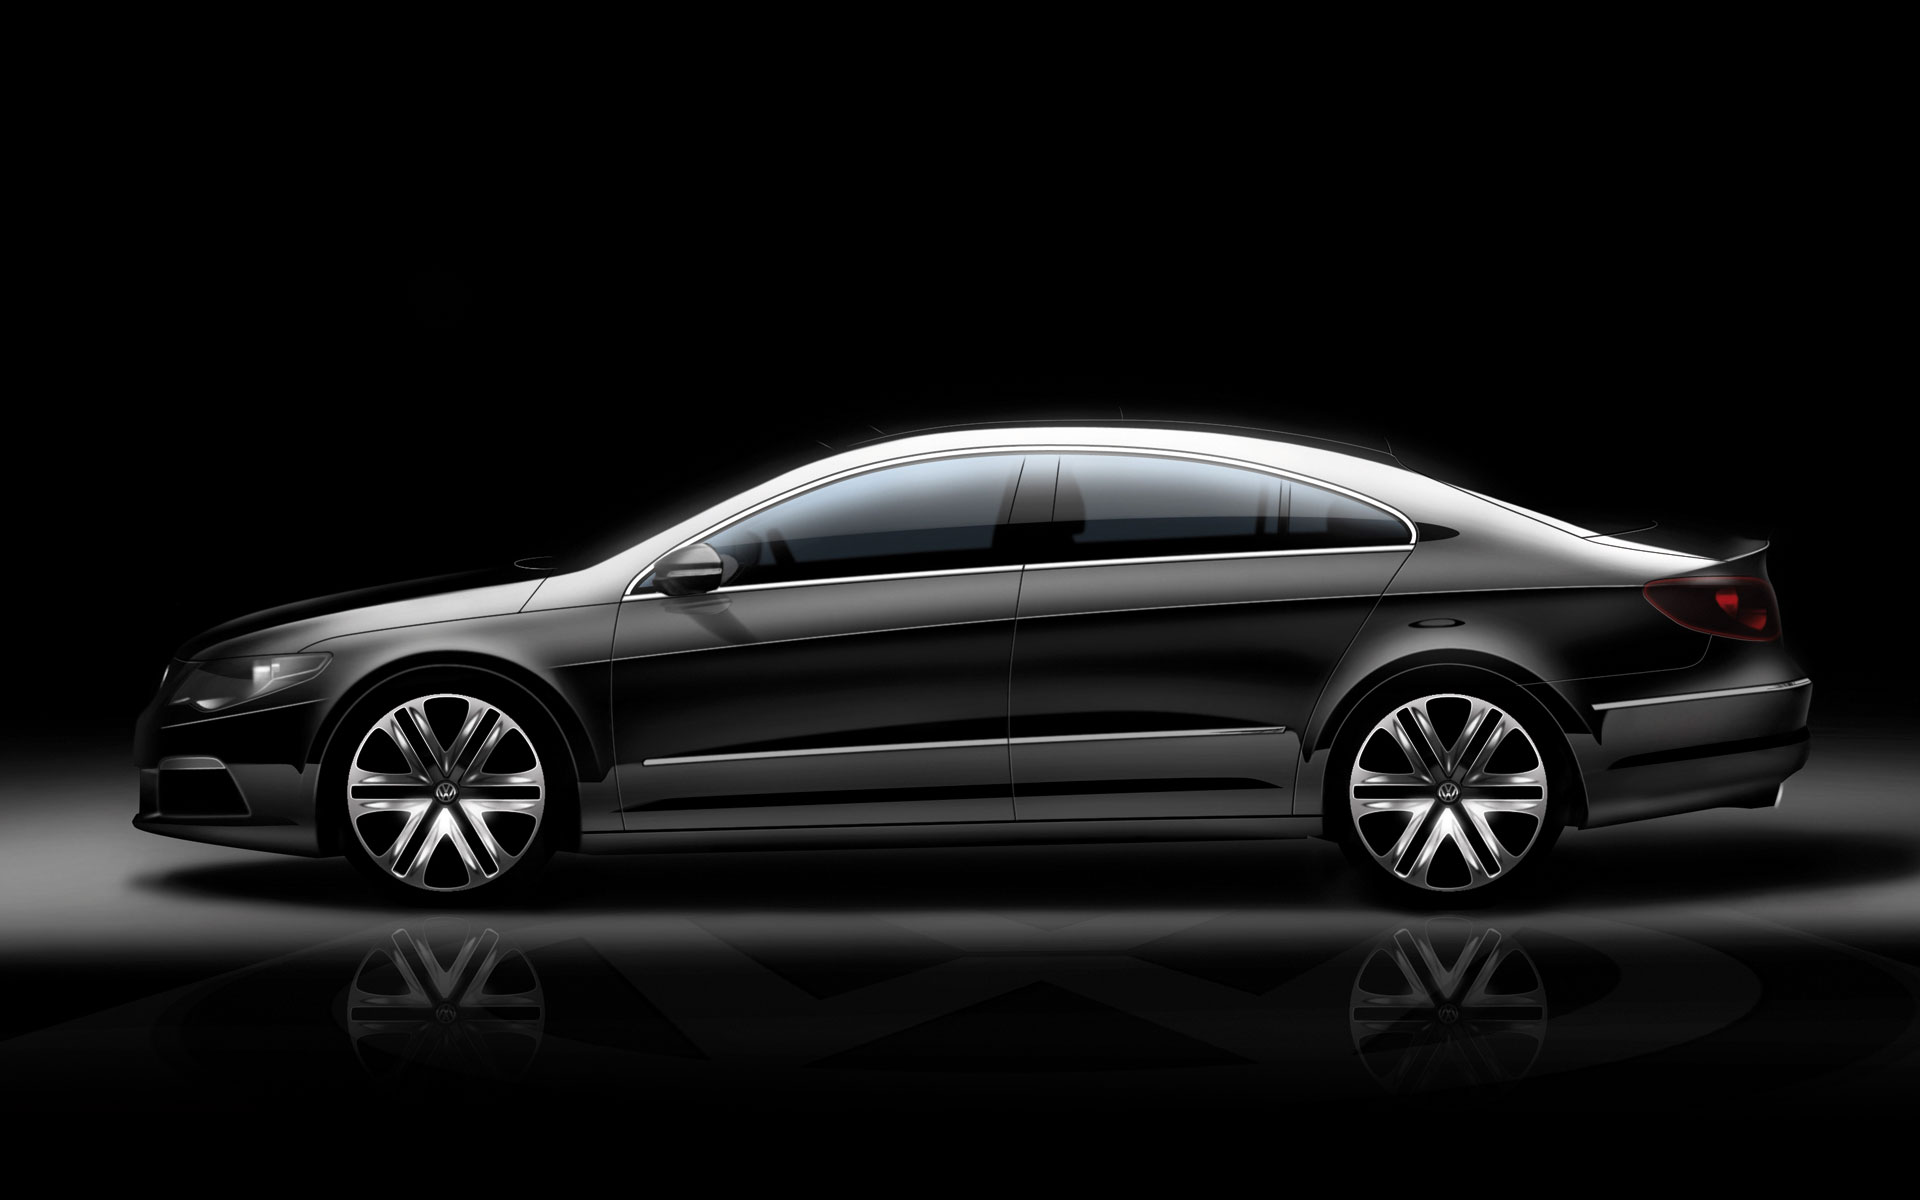 Vw Passat Cc Design Sketch Car Body Design